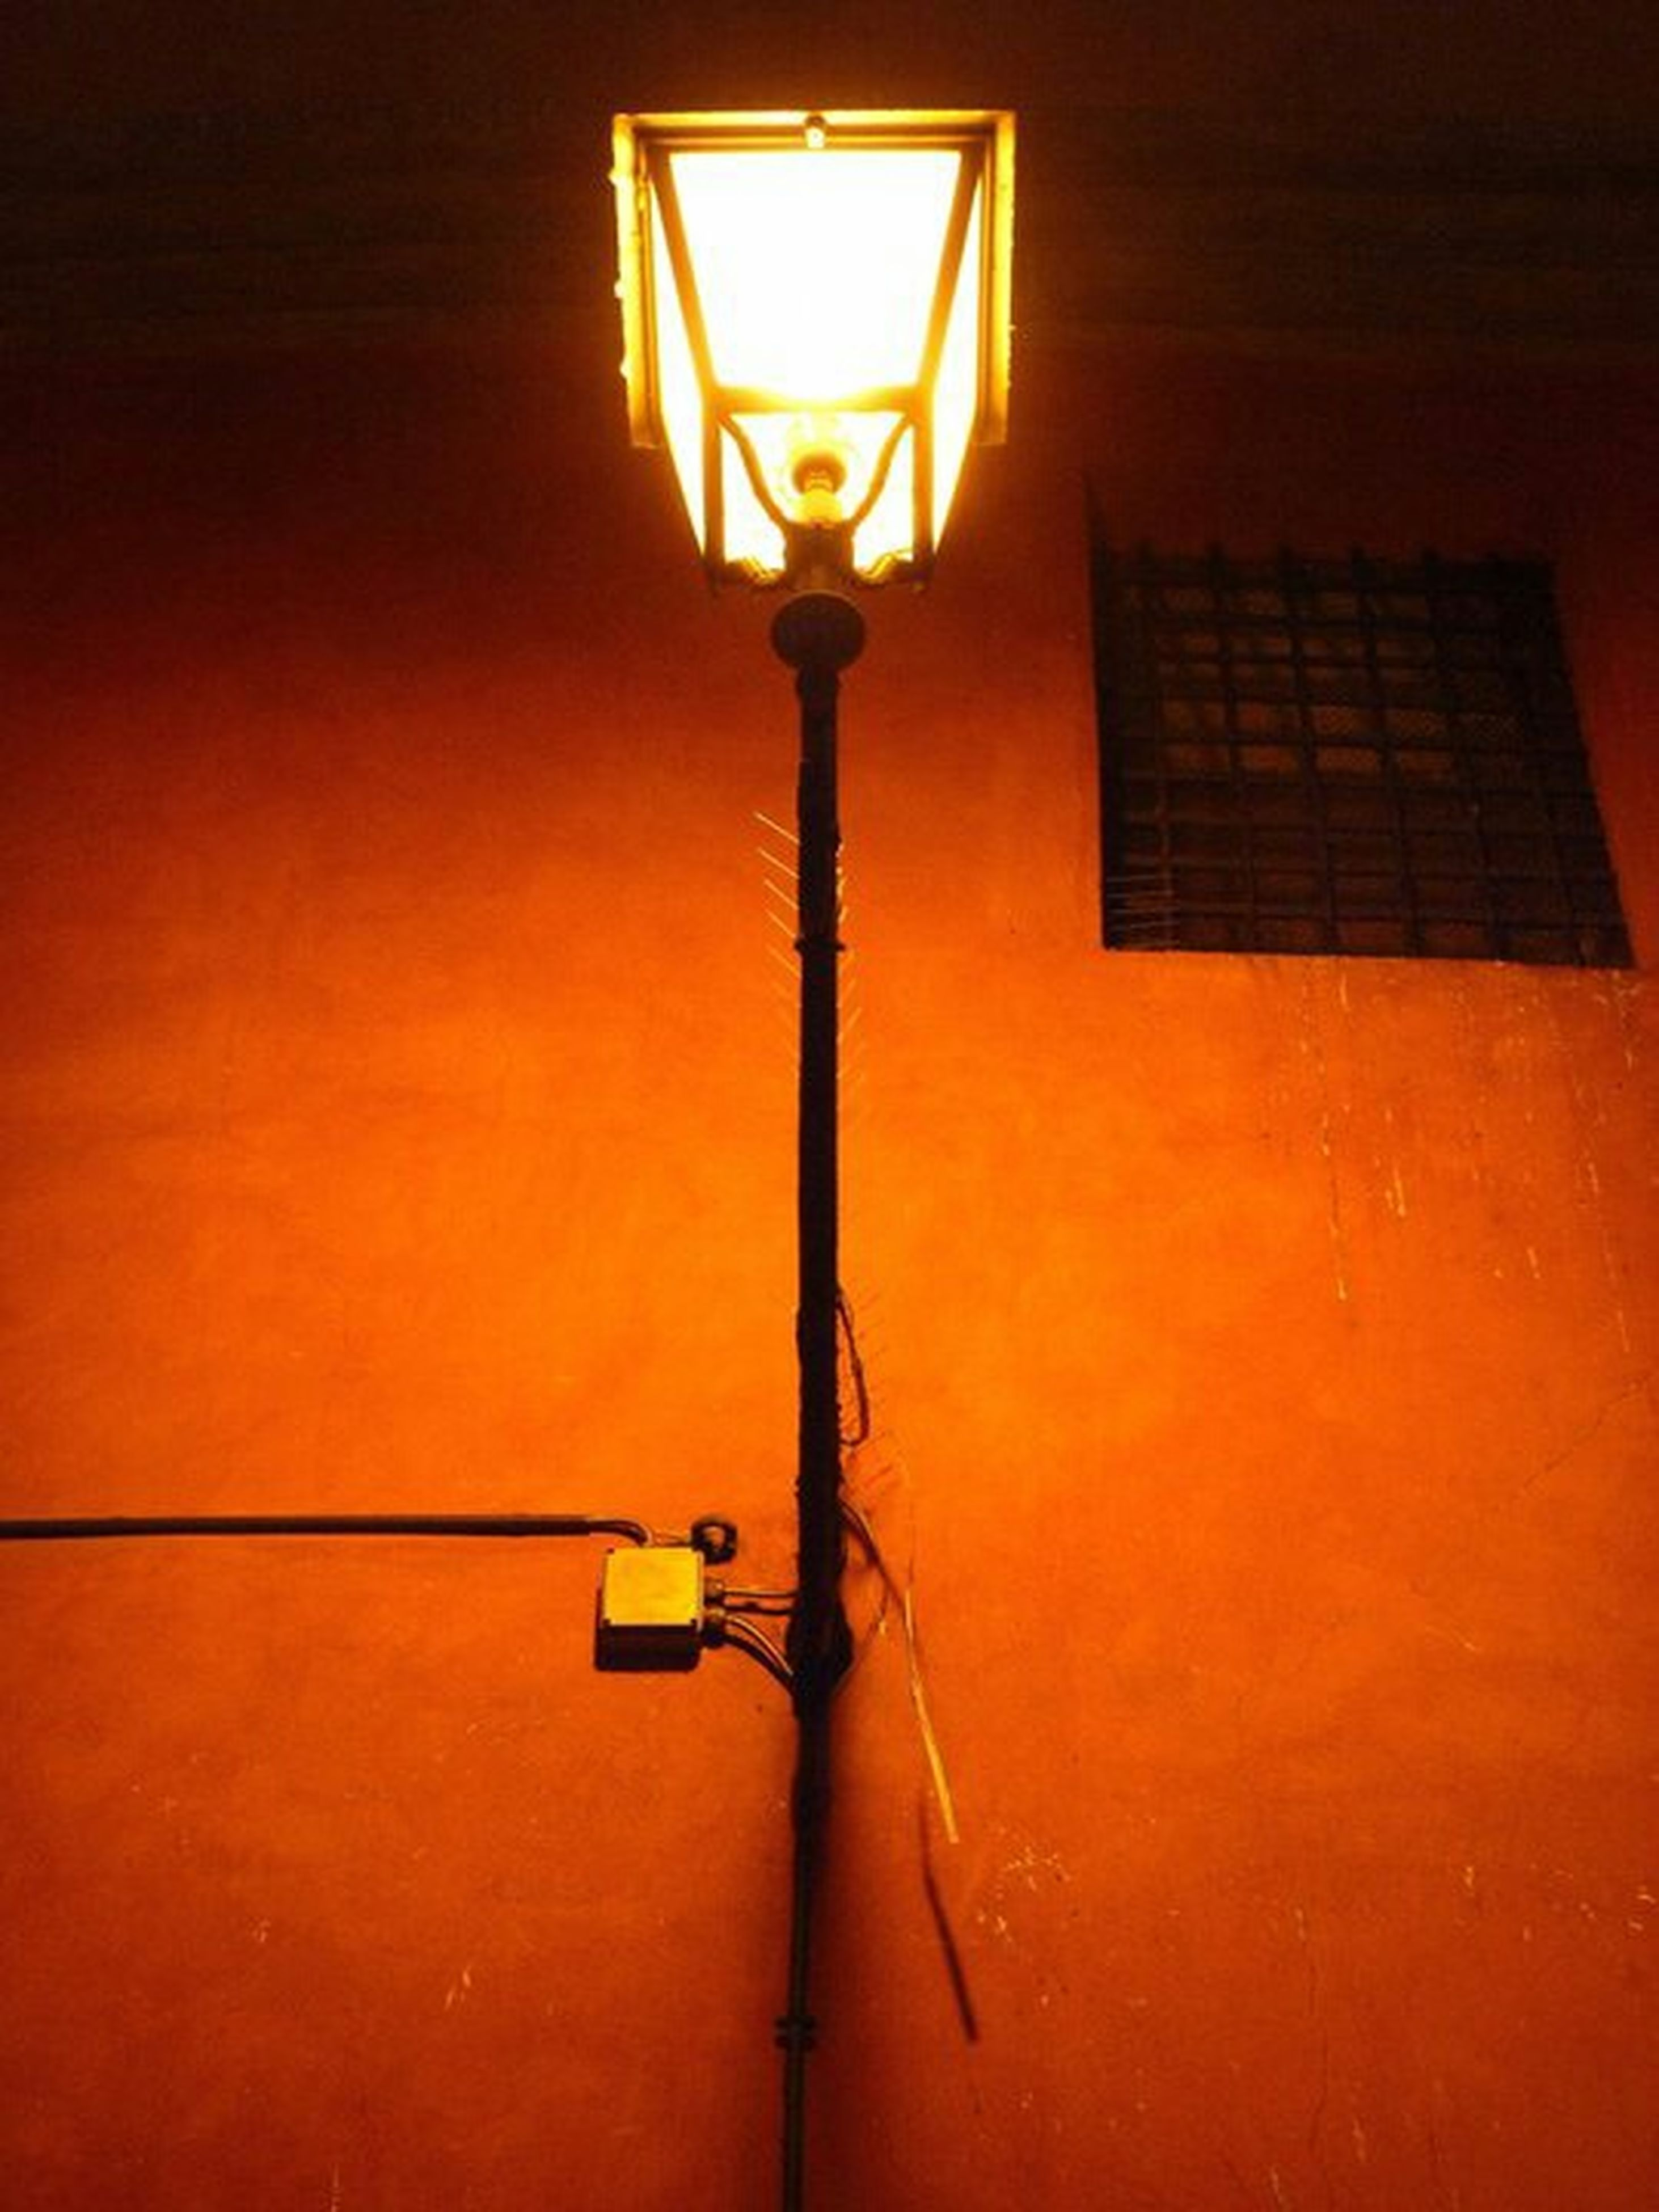 lighting equipment, illuminated, built structure, architecture, street light, wall - building feature, electric light, orange color, electricity, electric lamp, lamp, yellow, low angle view, indoors, lantern, building exterior, wall, hanging, door, house